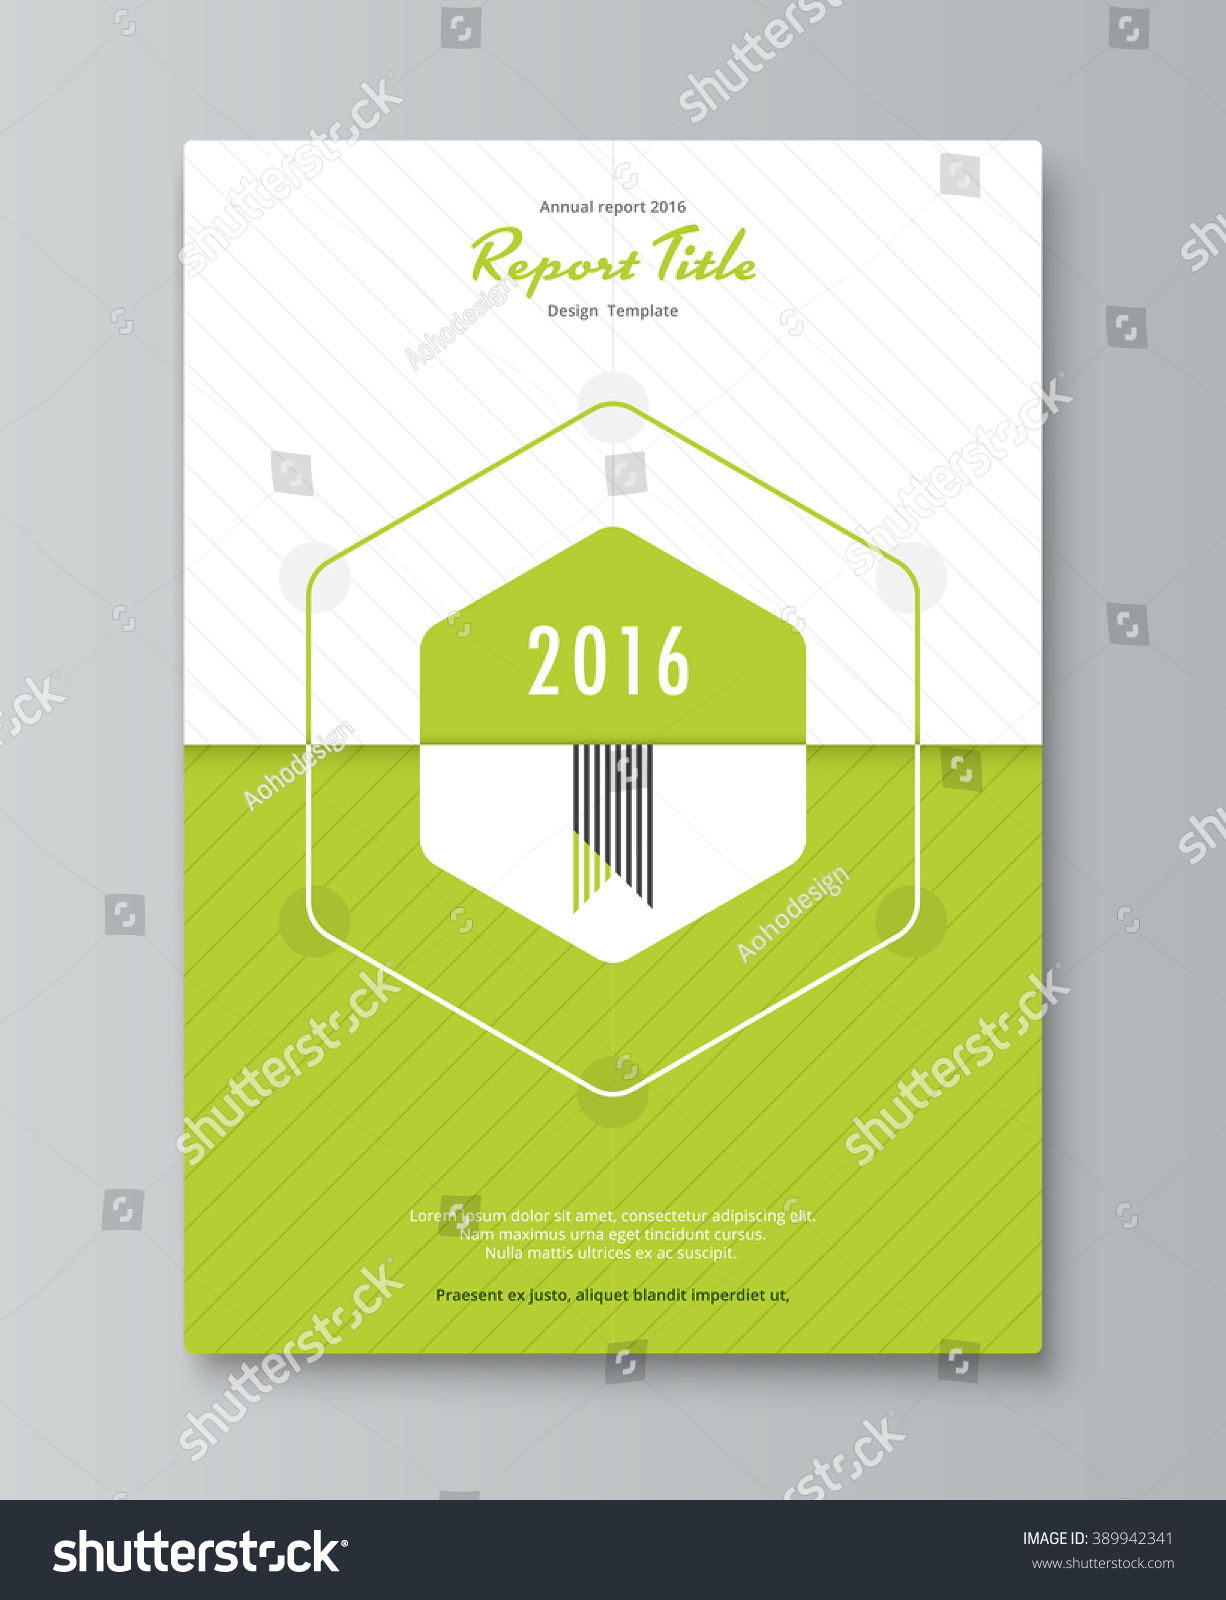 Annual Report Book Cover Design : Hexagon annual report cover design book stock vector